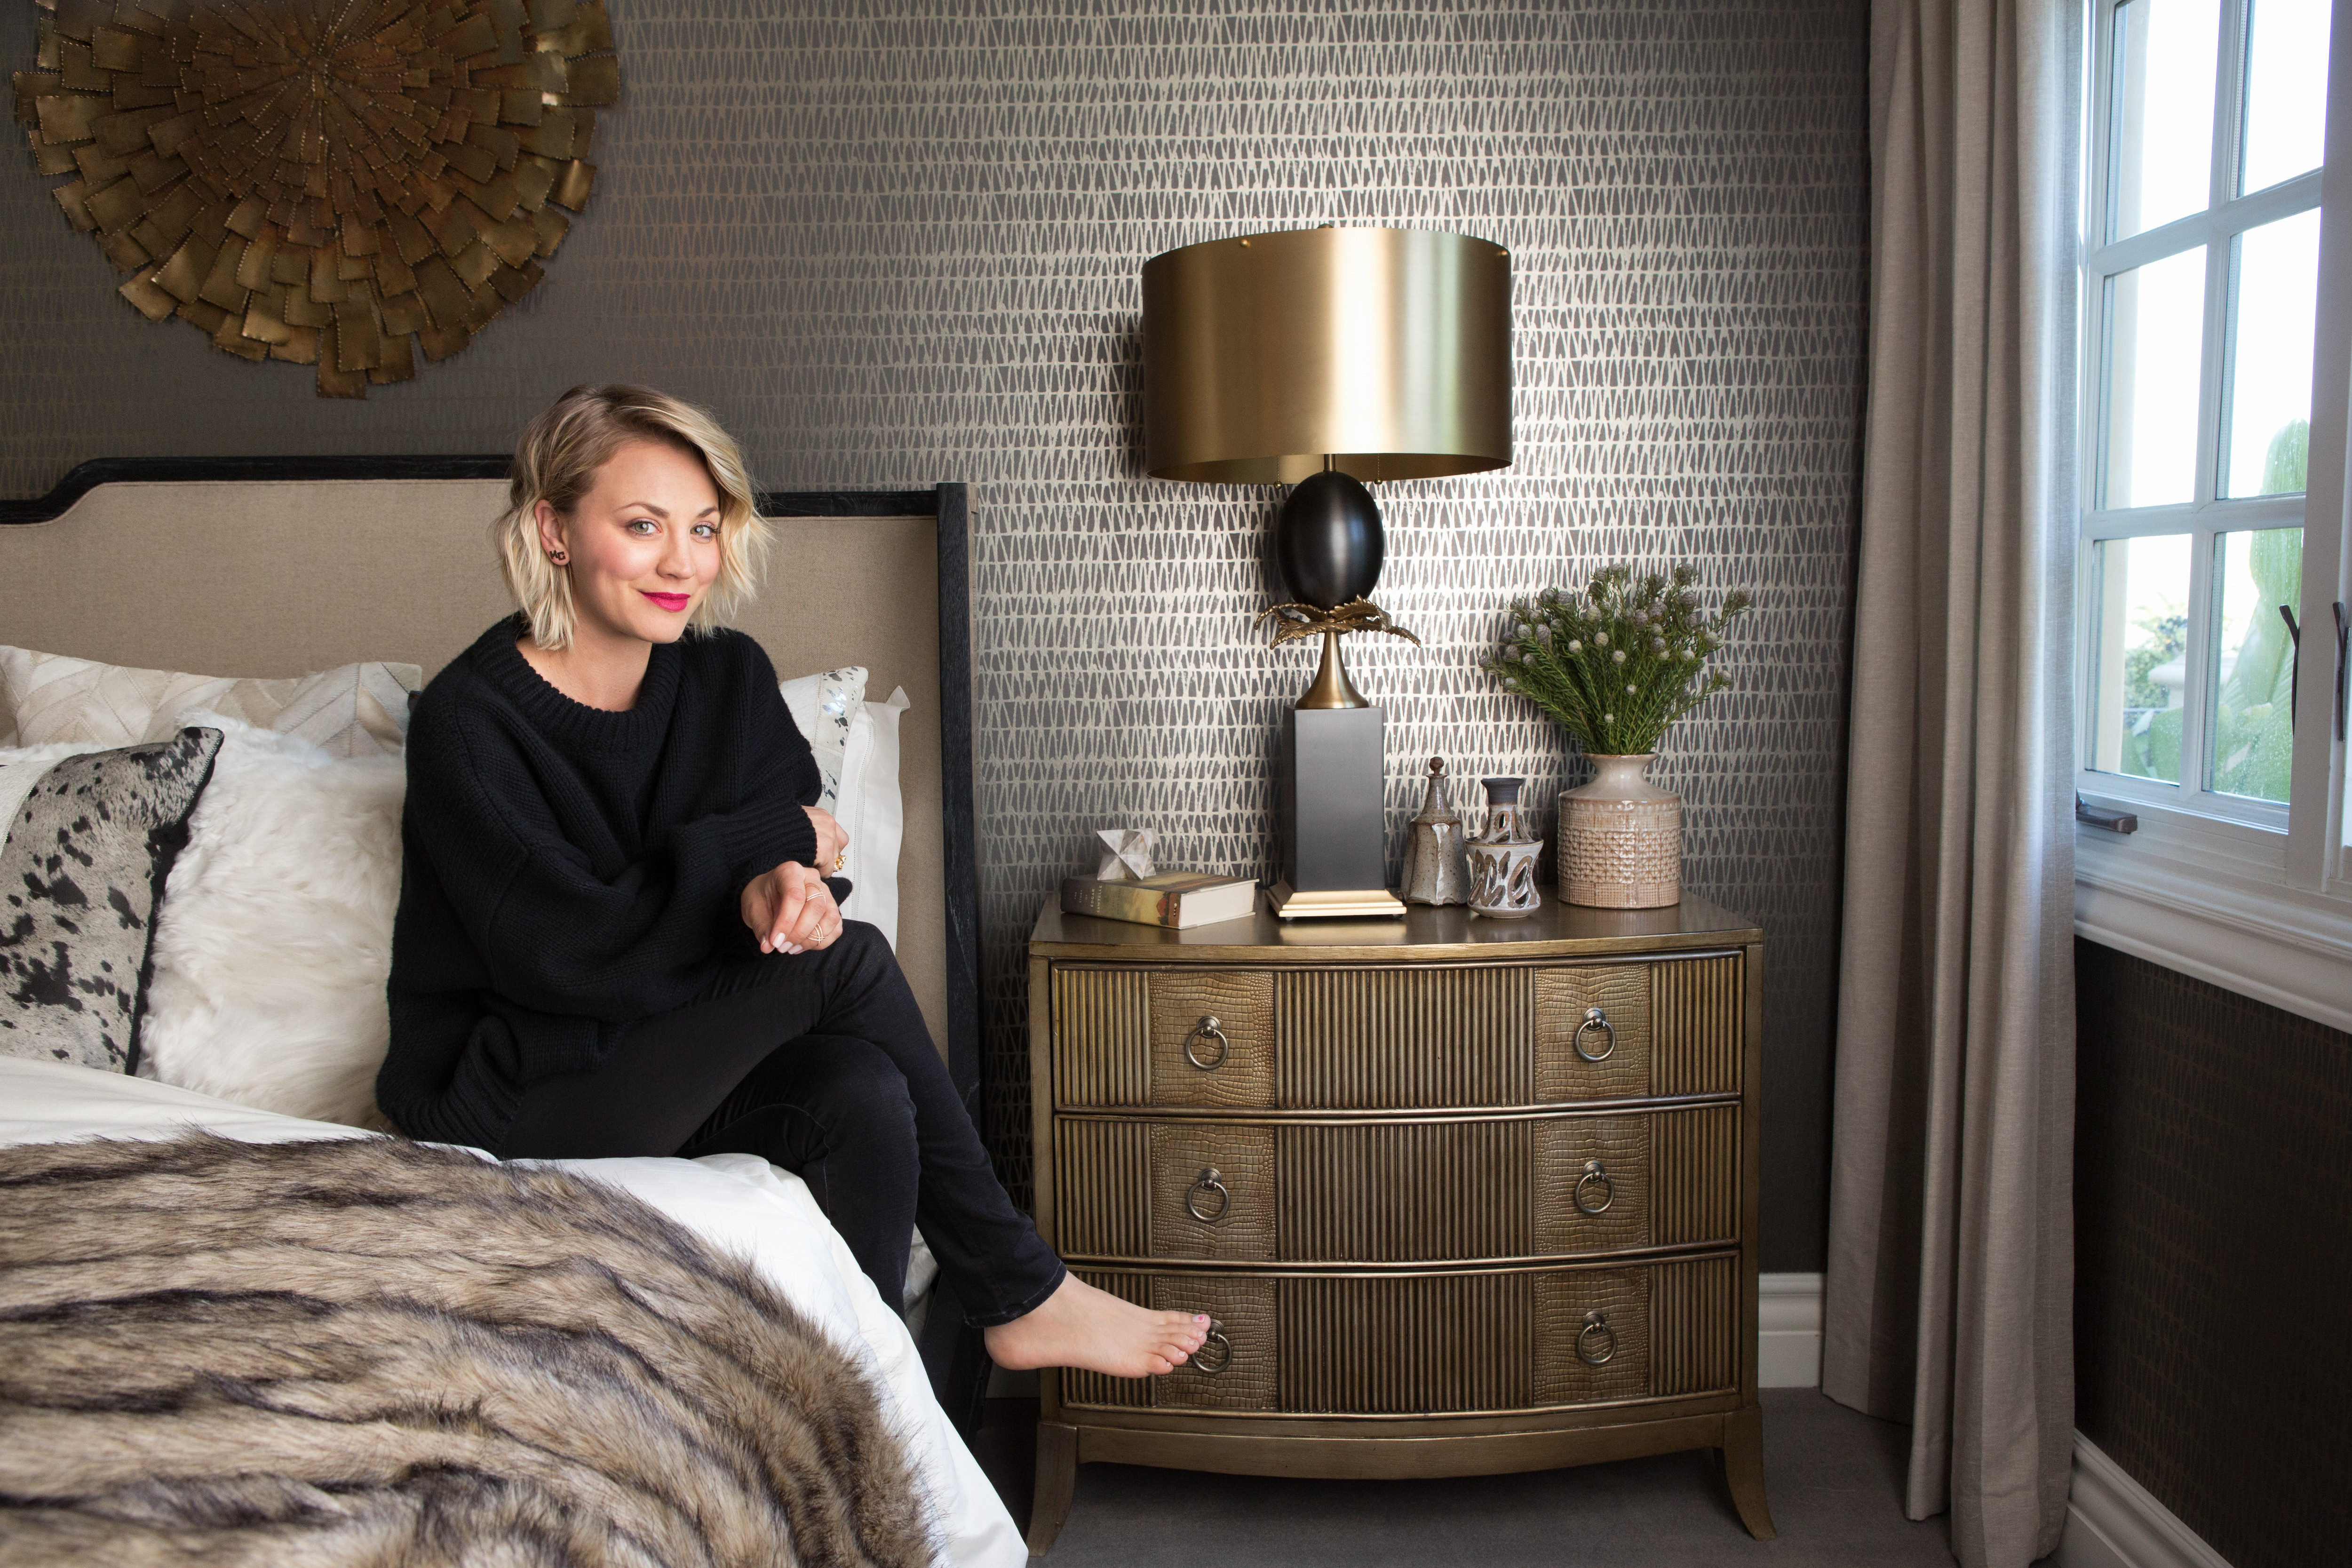 39 Big Bang Theory 39 Star Kaley Cuoco Revamps Her Guest Room